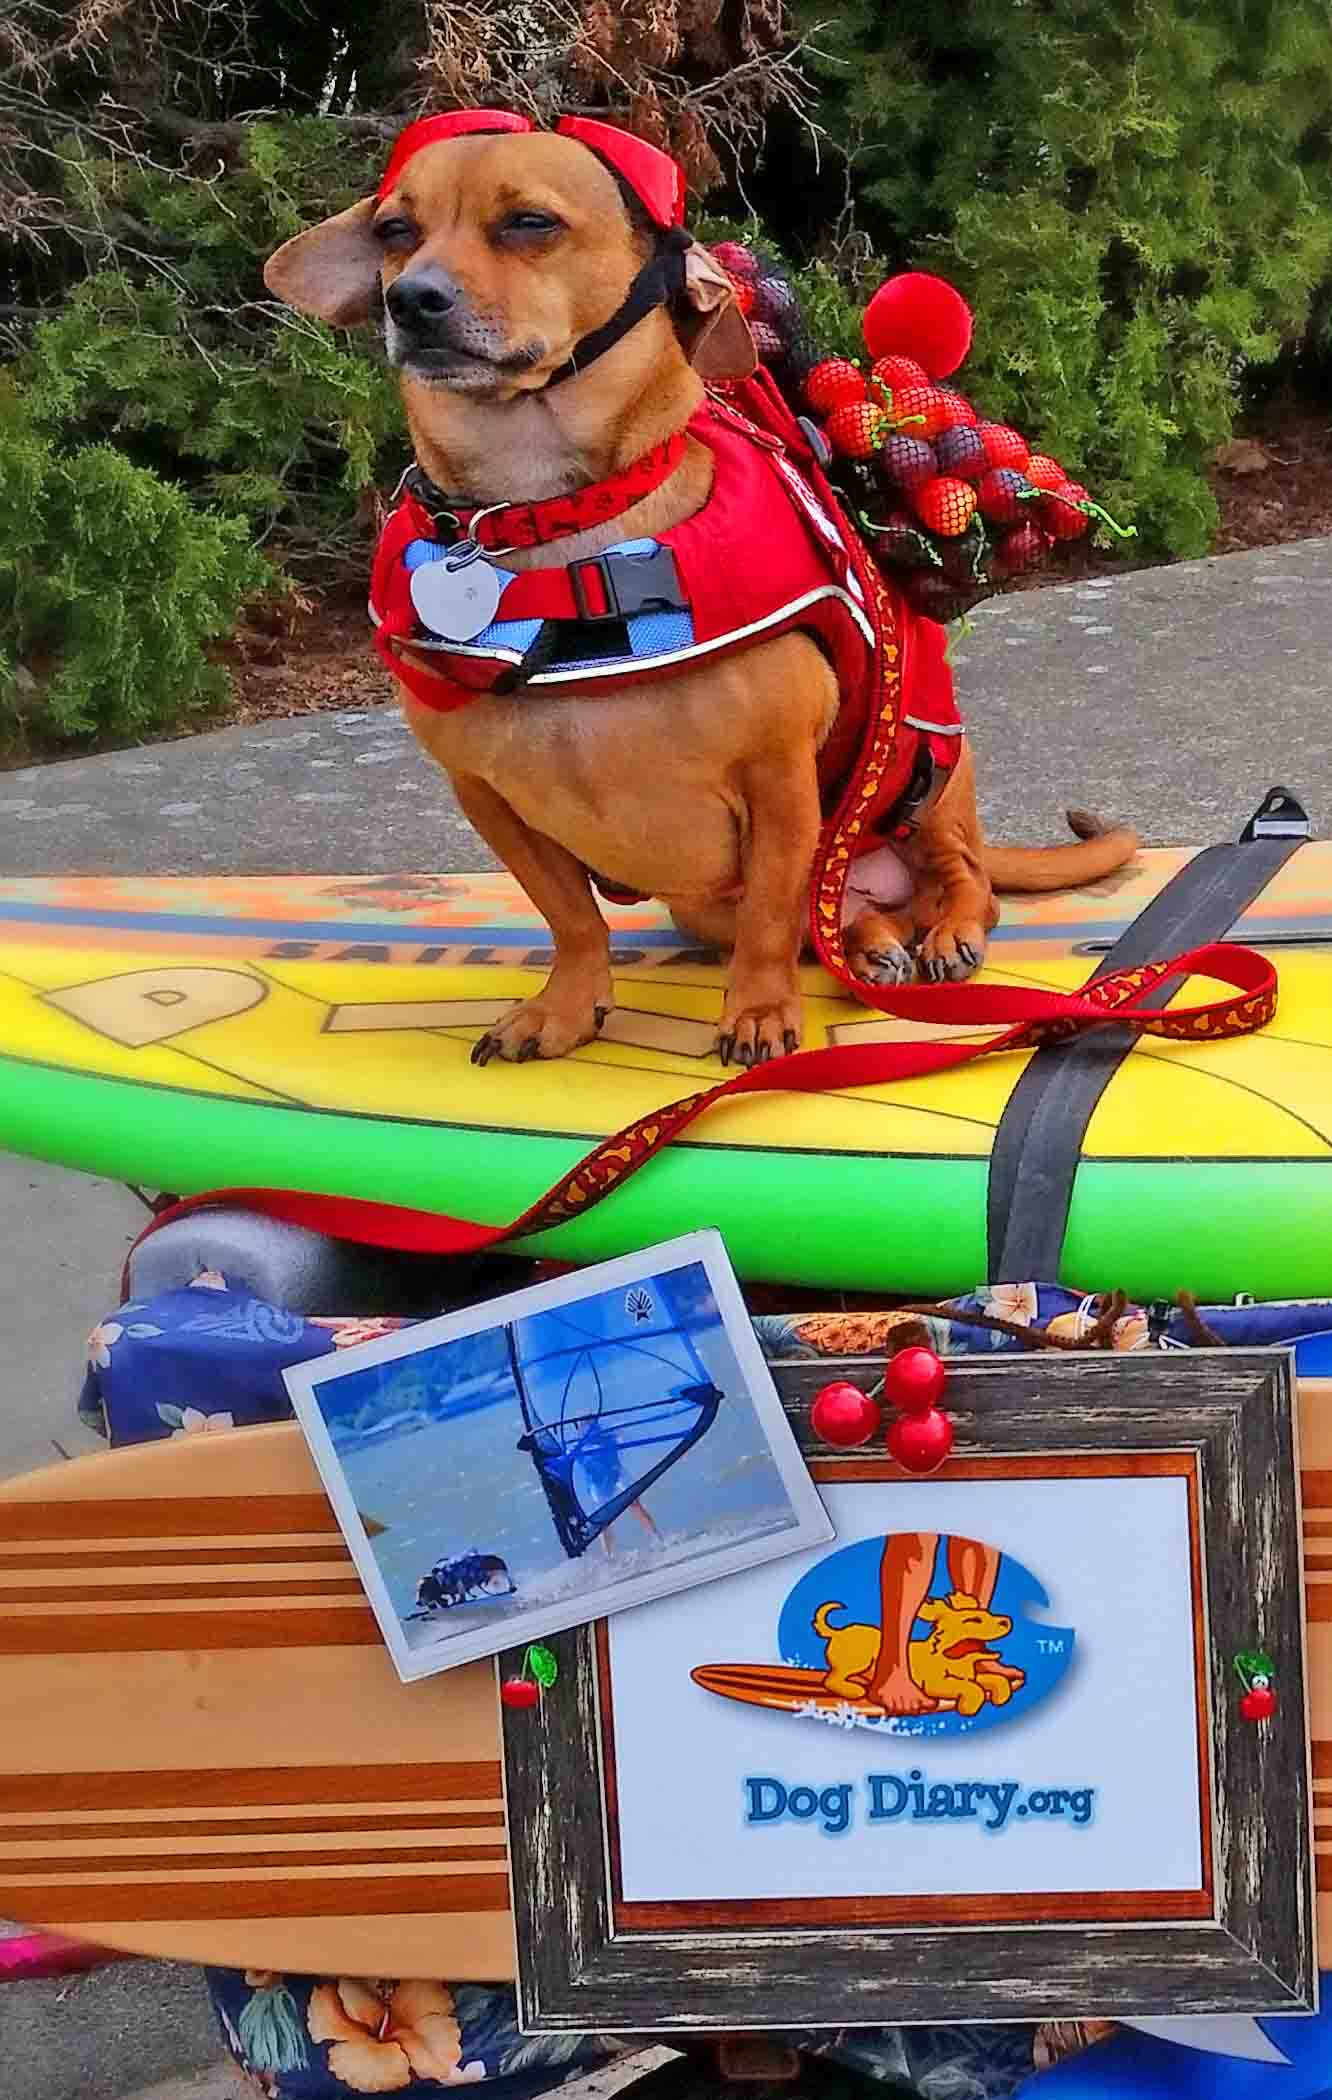 My 4th surf dog, doxie Doodle, on a parade float honoring his windsurfing basset brothers. Photo: (c) Barb Ayers, DogDiary.org